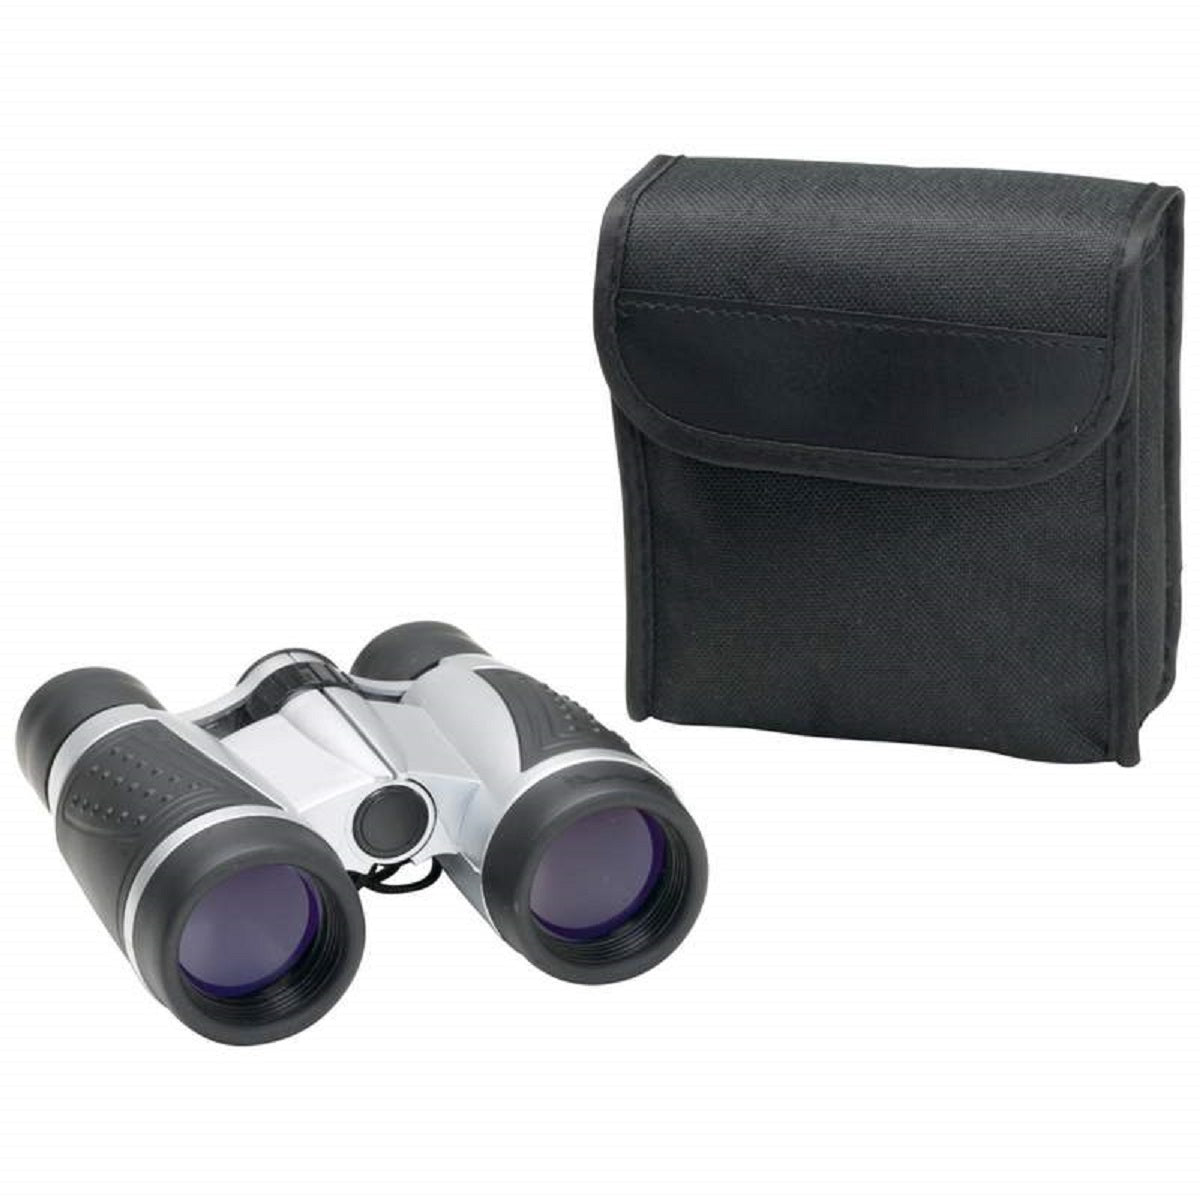 Magnacraft 4x30 & 5X30 High-Powered Binoculars & Carrying Case